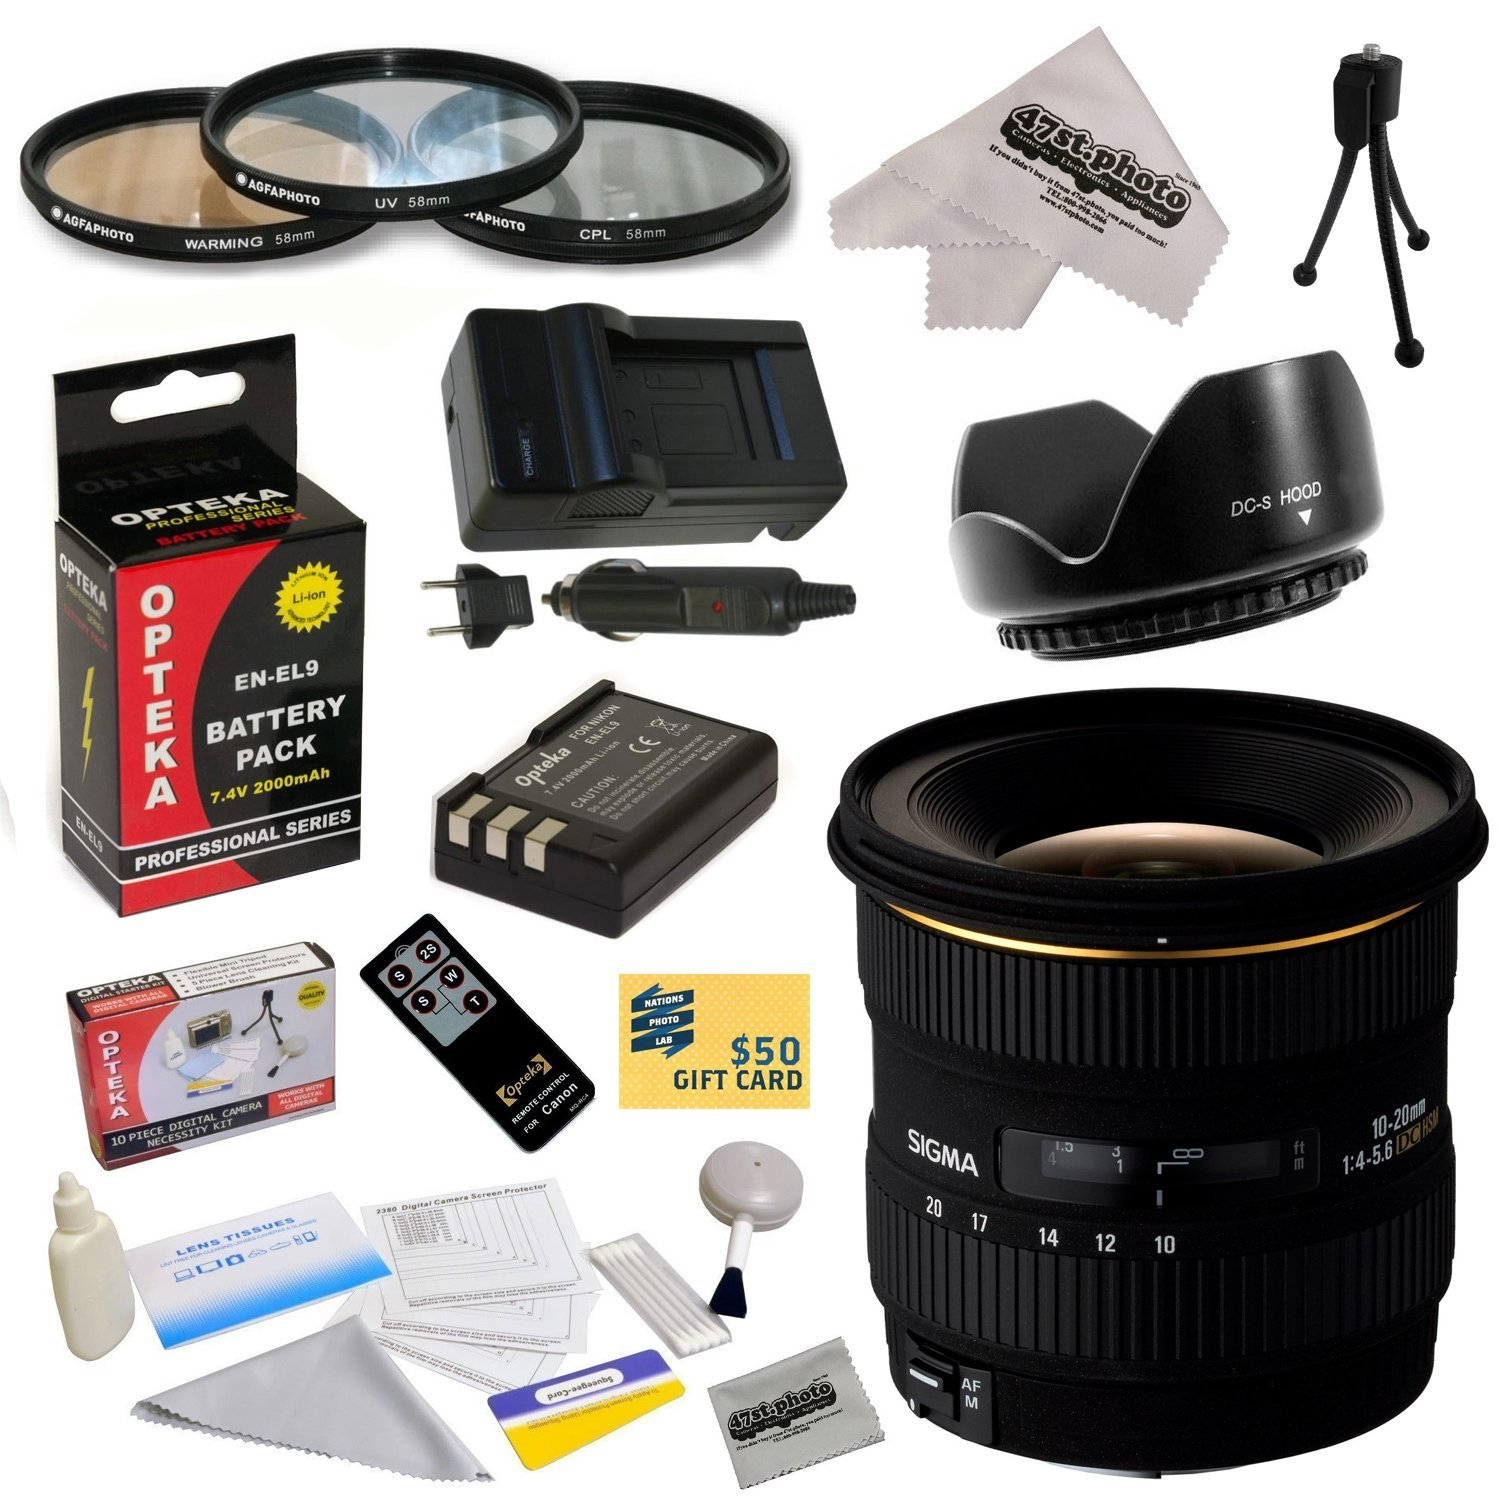 Sigma 10-20mm f/4-5.6 EX DC HSM Autofocus Lens for Nikon D40 D40x D60 with 77MM 3 Piece Filter Kit, EN-EL9 2000MAH, Charger, Remote Control, Cleaning Kit, Microfiber Cloth